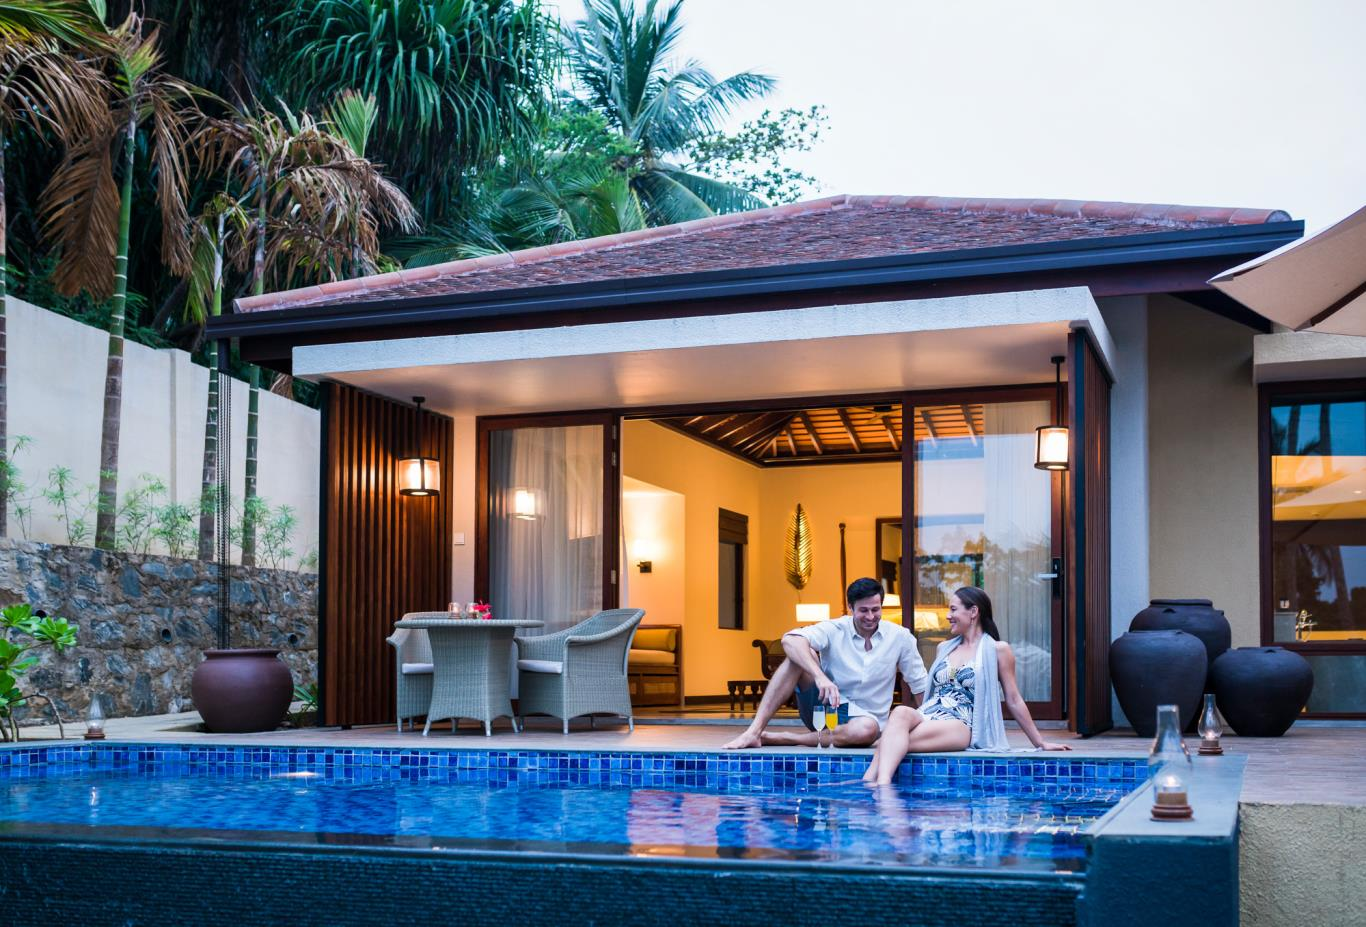 One Bed Pool Villa exterior